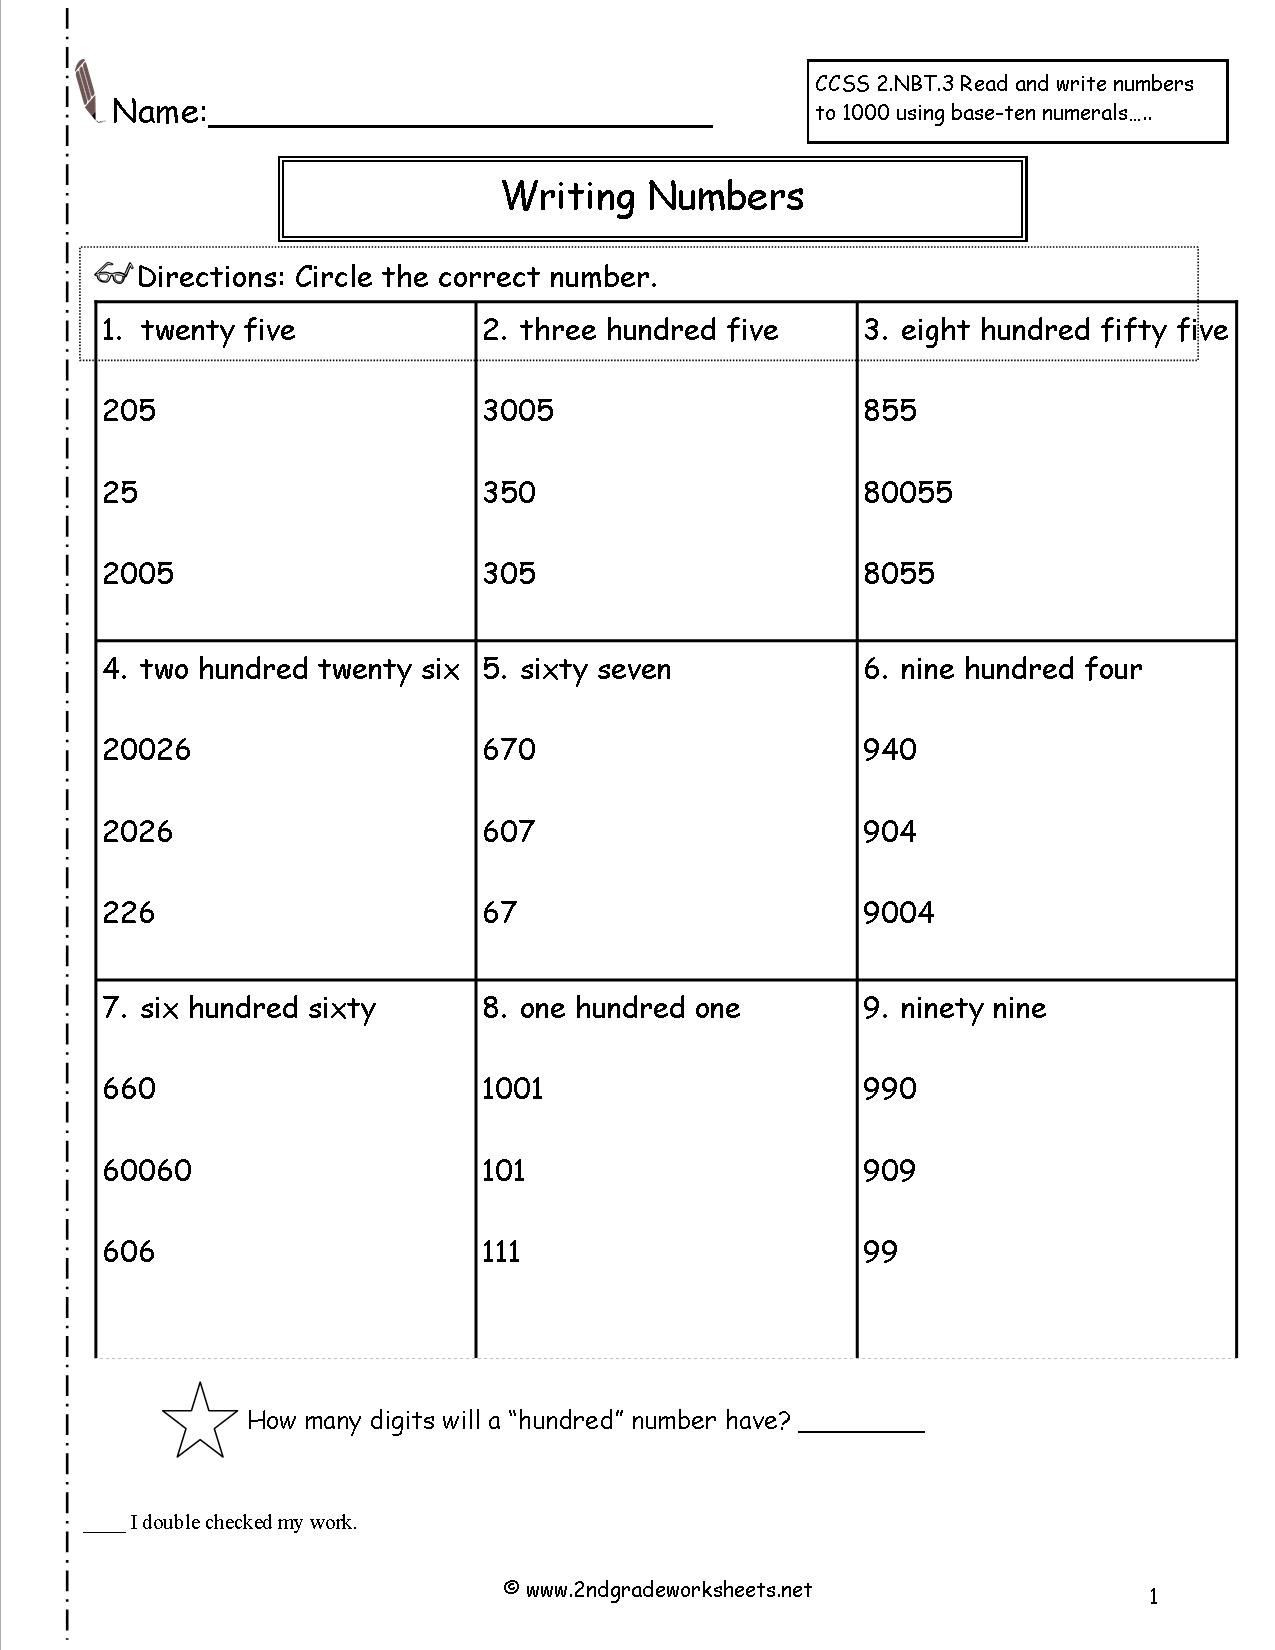 reading numbers to 1000 worksheet